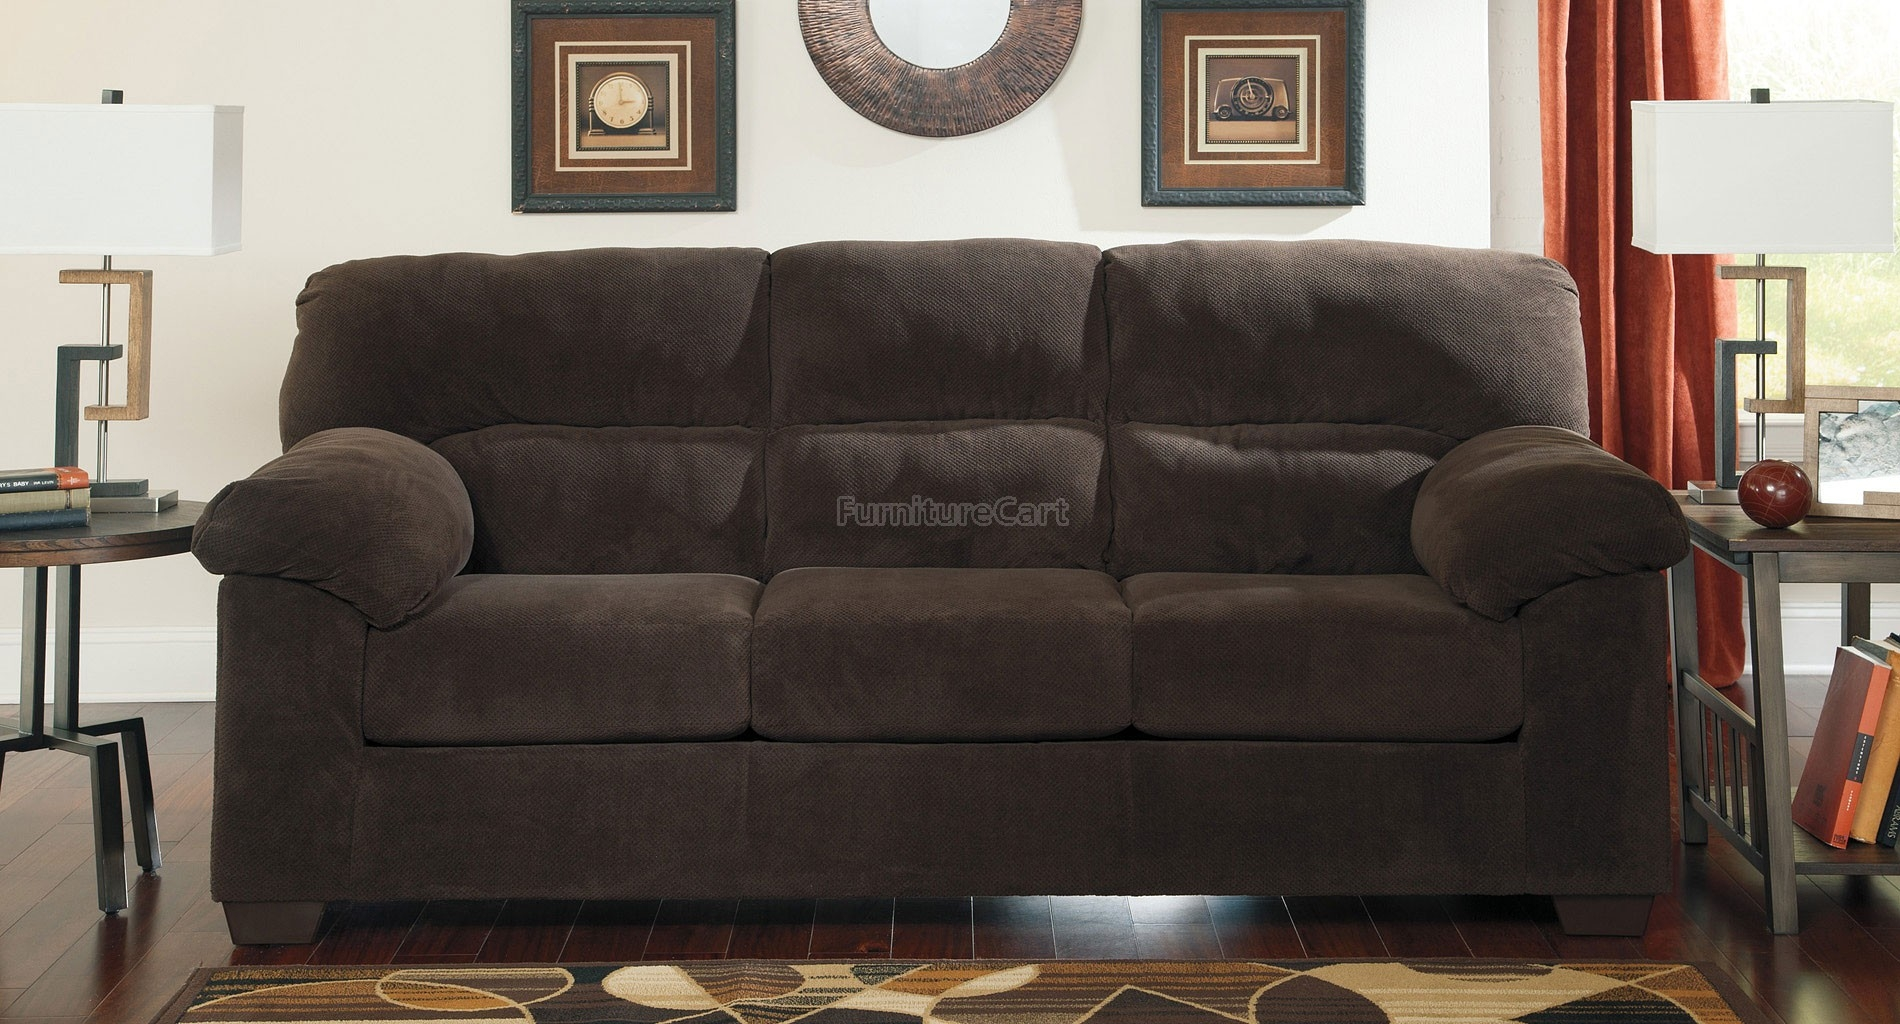 Decor Fascinating Benchcraft Sofa With Luxury Shapes For Living In Berkline Sofa Recliner (Image 8 of 15)